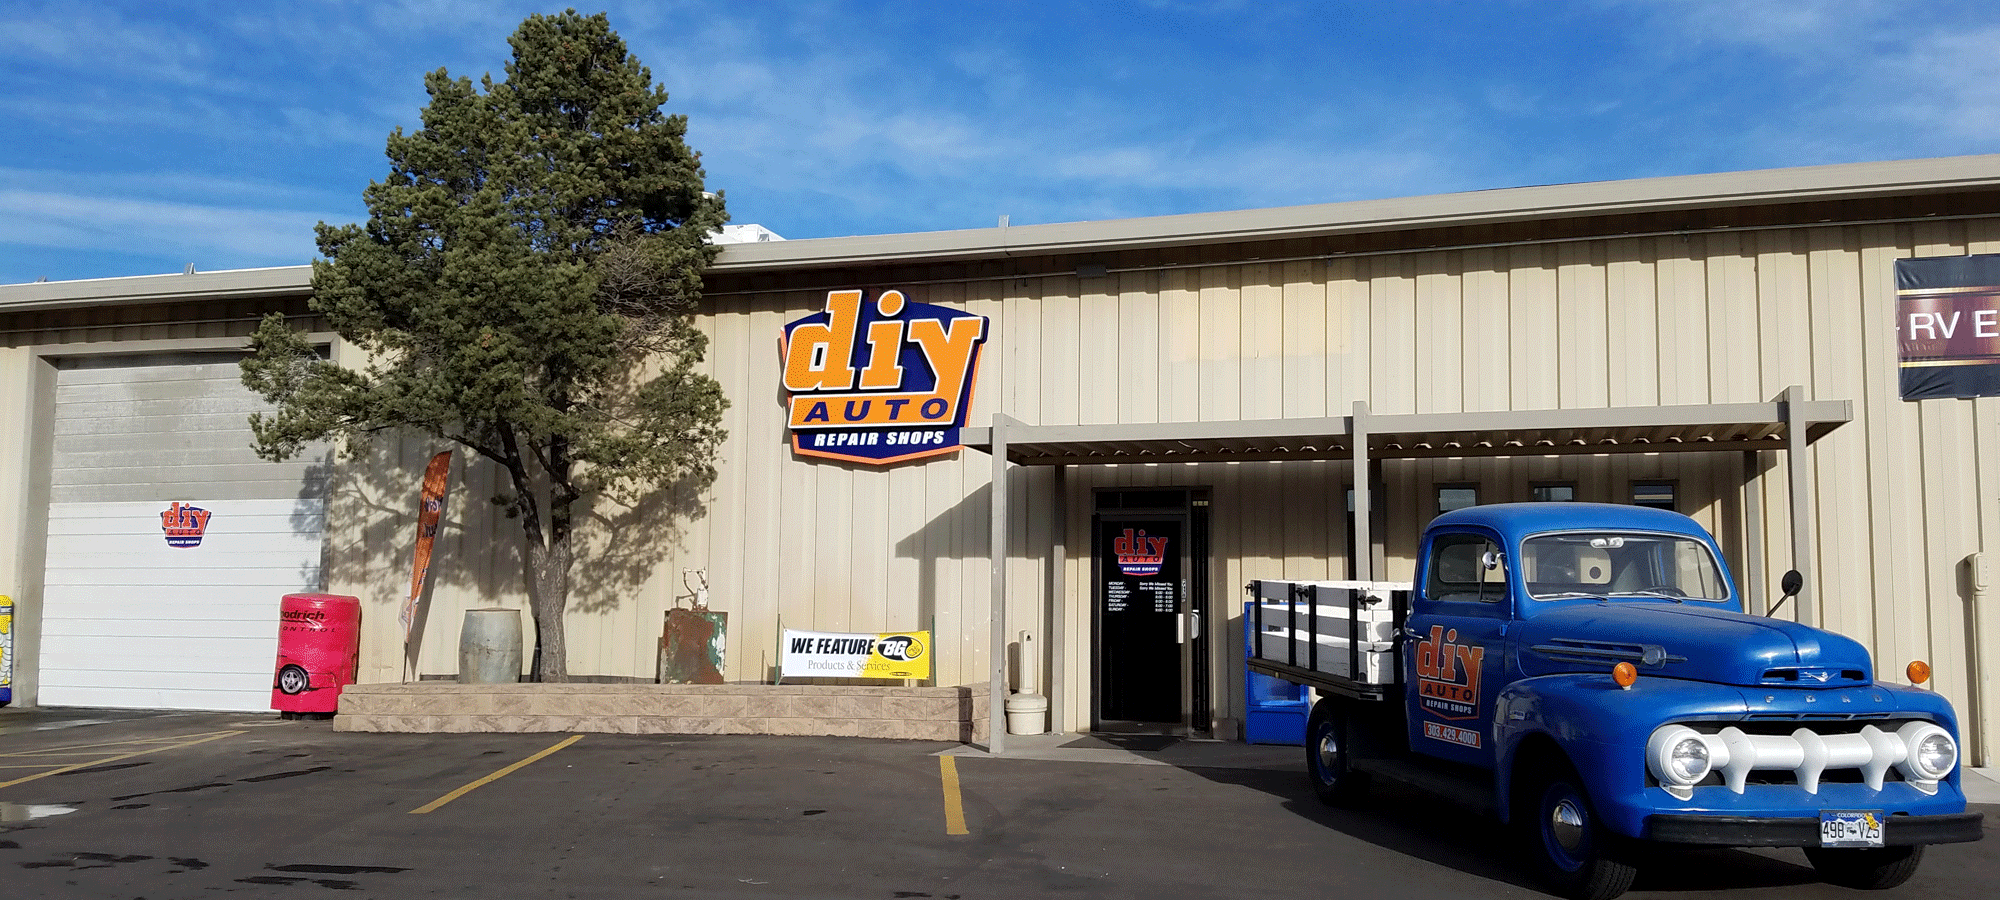 Diy auto repair shops equipped self service garage bays diy auto repair bays for rent solutioingenieria Images